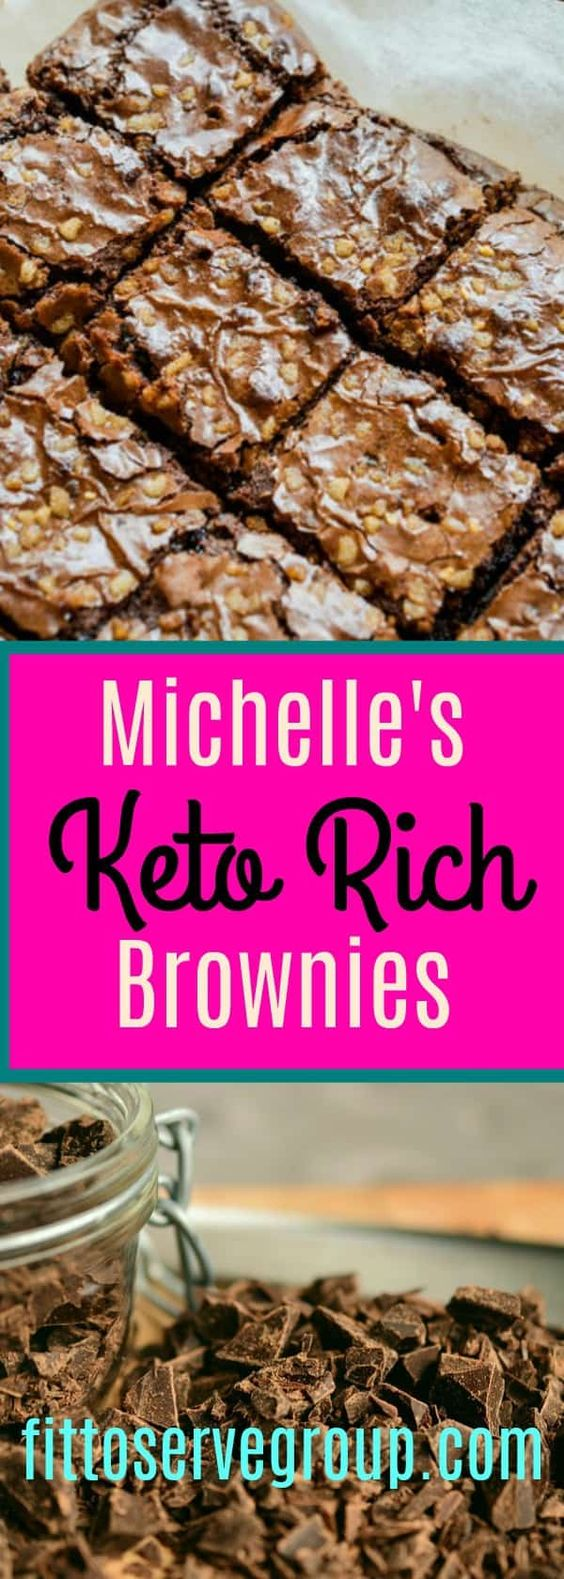 Michelle's Rich Keto Brownies